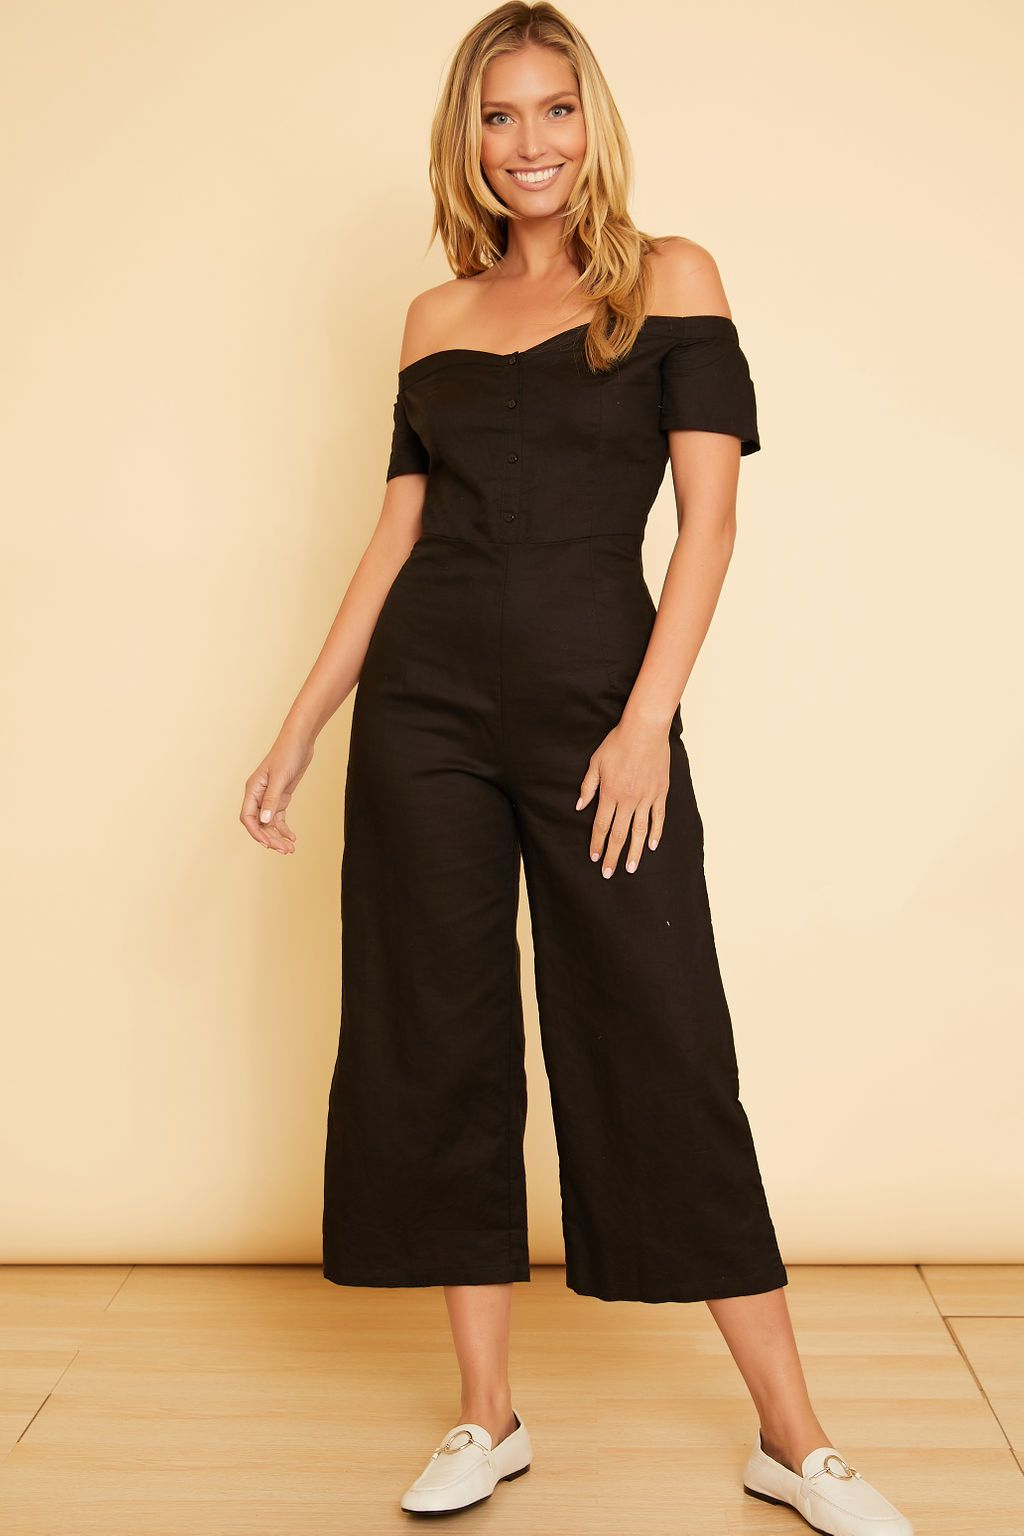 Off the Shoulder Jumpsuit - wearNYLA